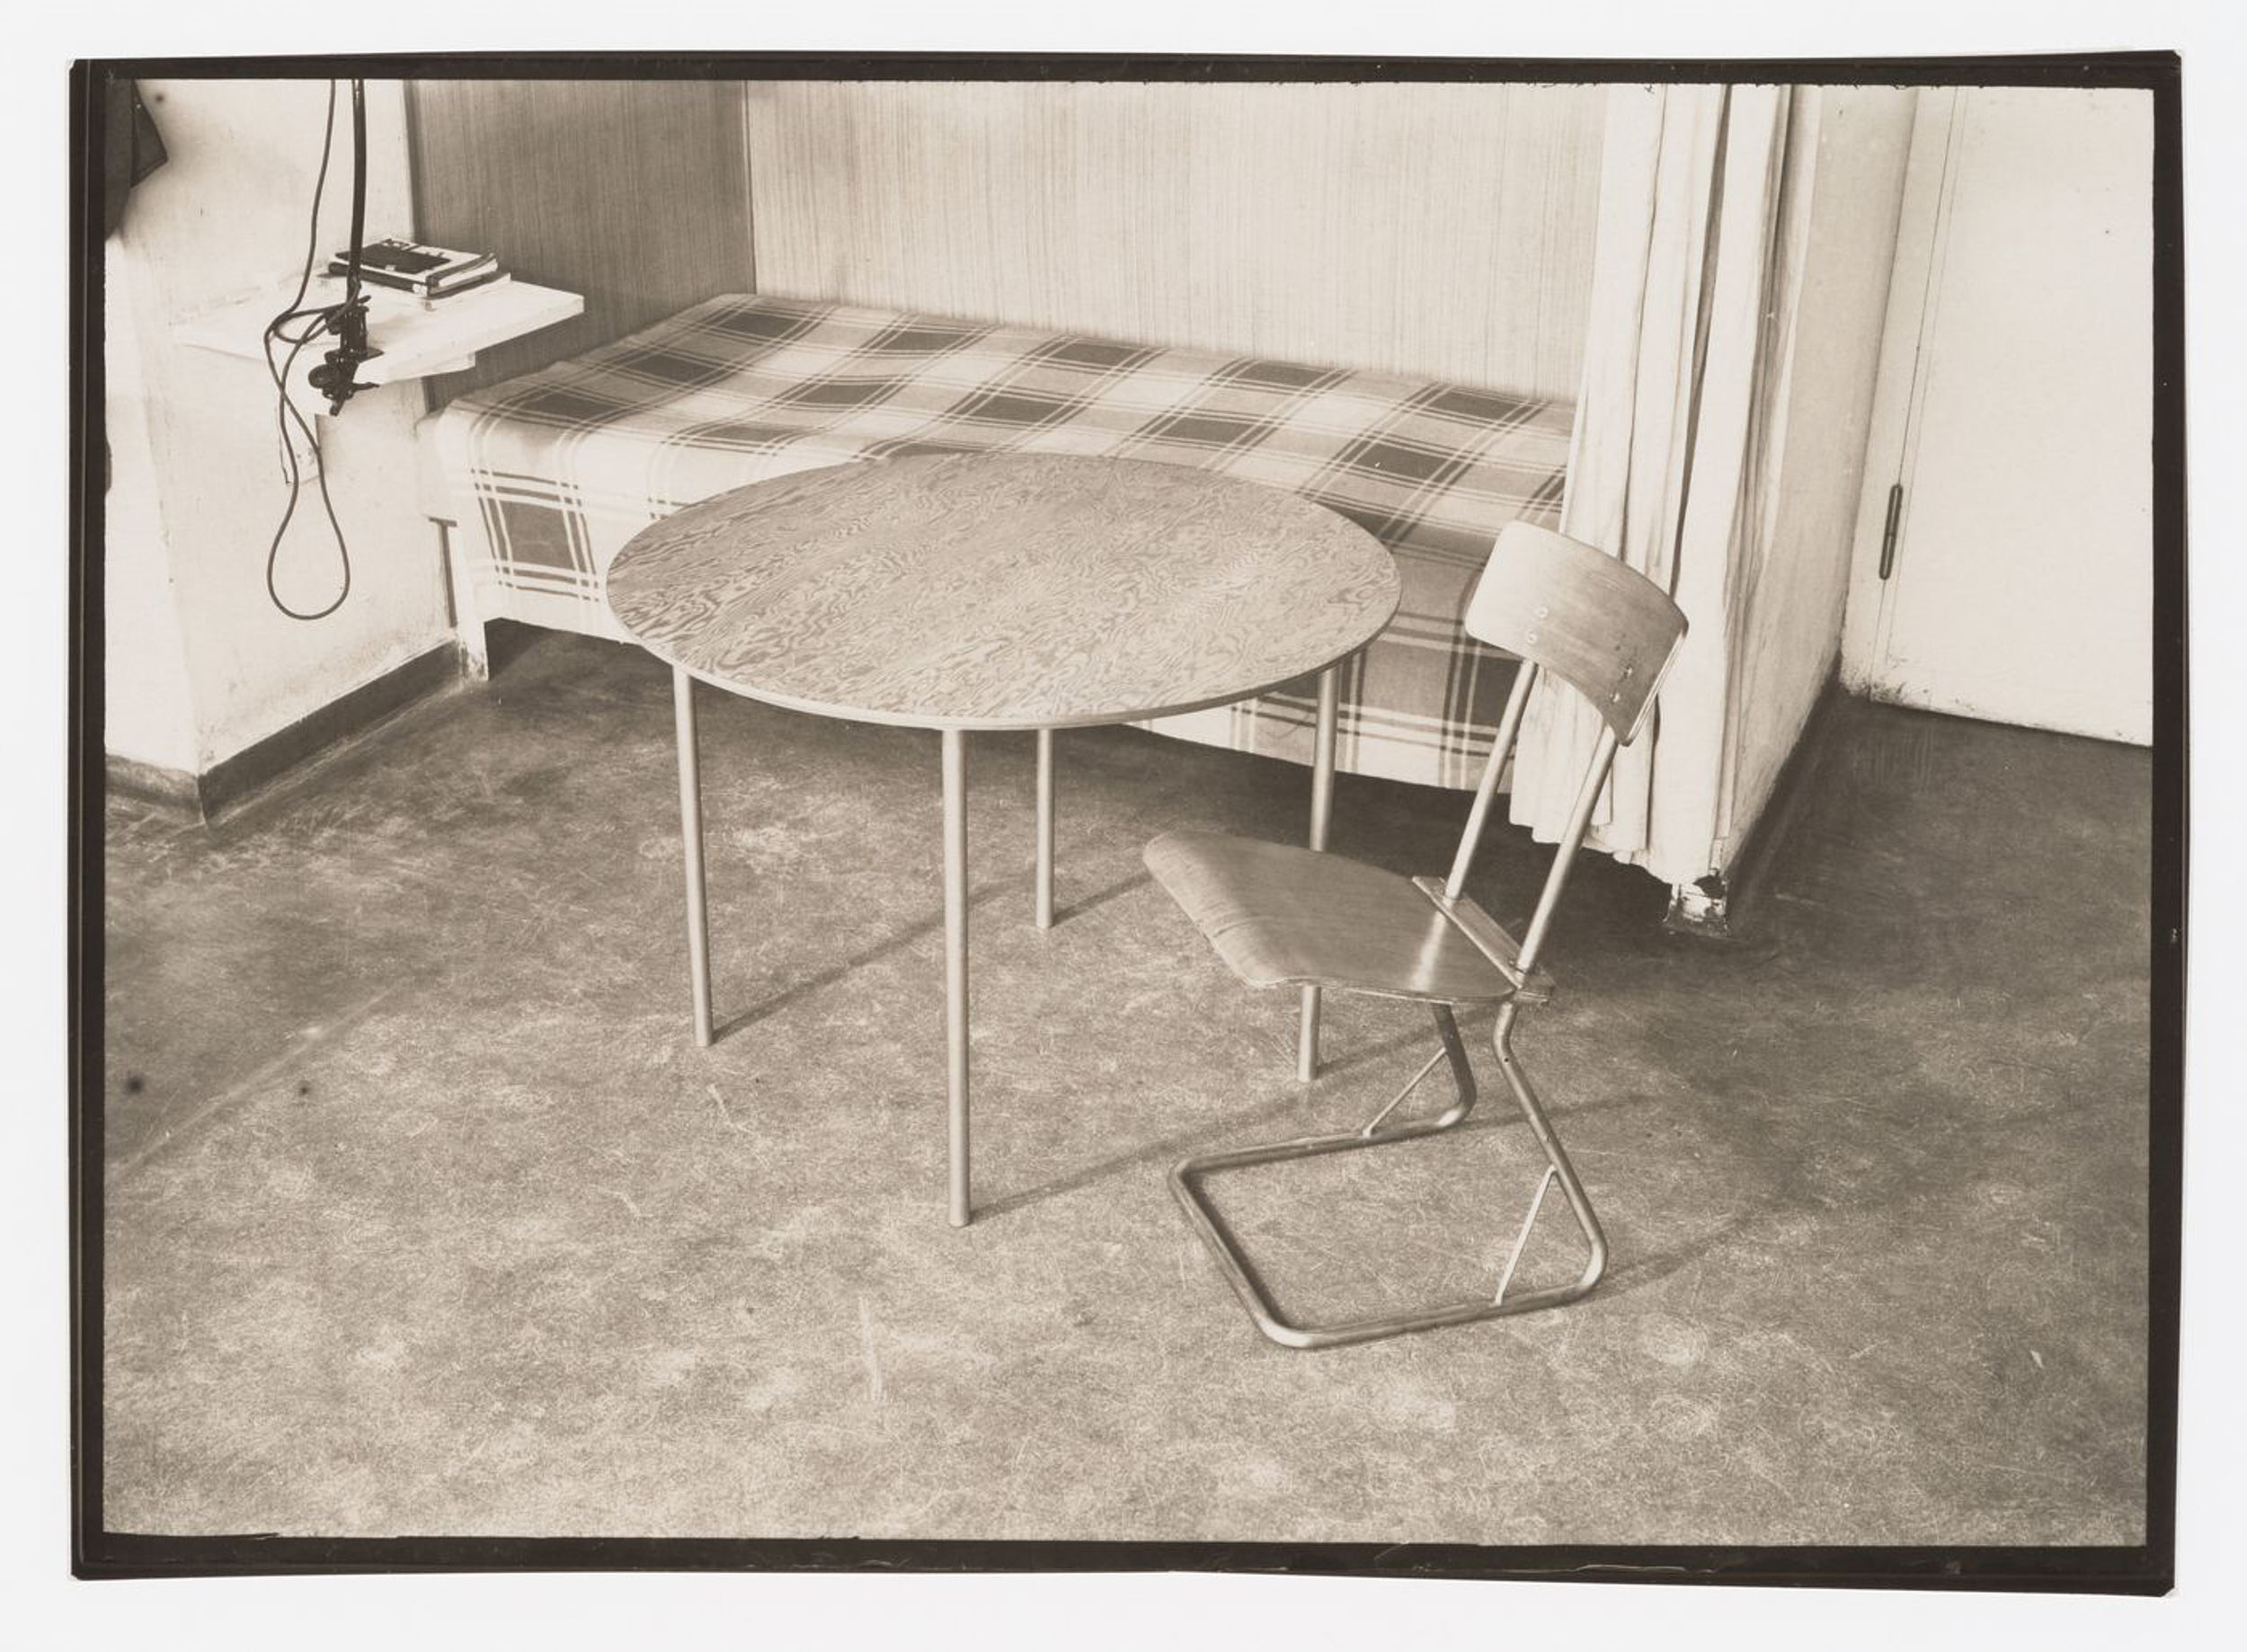 Interior view of a studio apartment in the Bauhaus building showing a bed, round table and side chair designed by Marcel Breuer, Dessau, Germany — Collection Centre Canadien d'Architecture/Canadian Centre for Architecture, Montréal